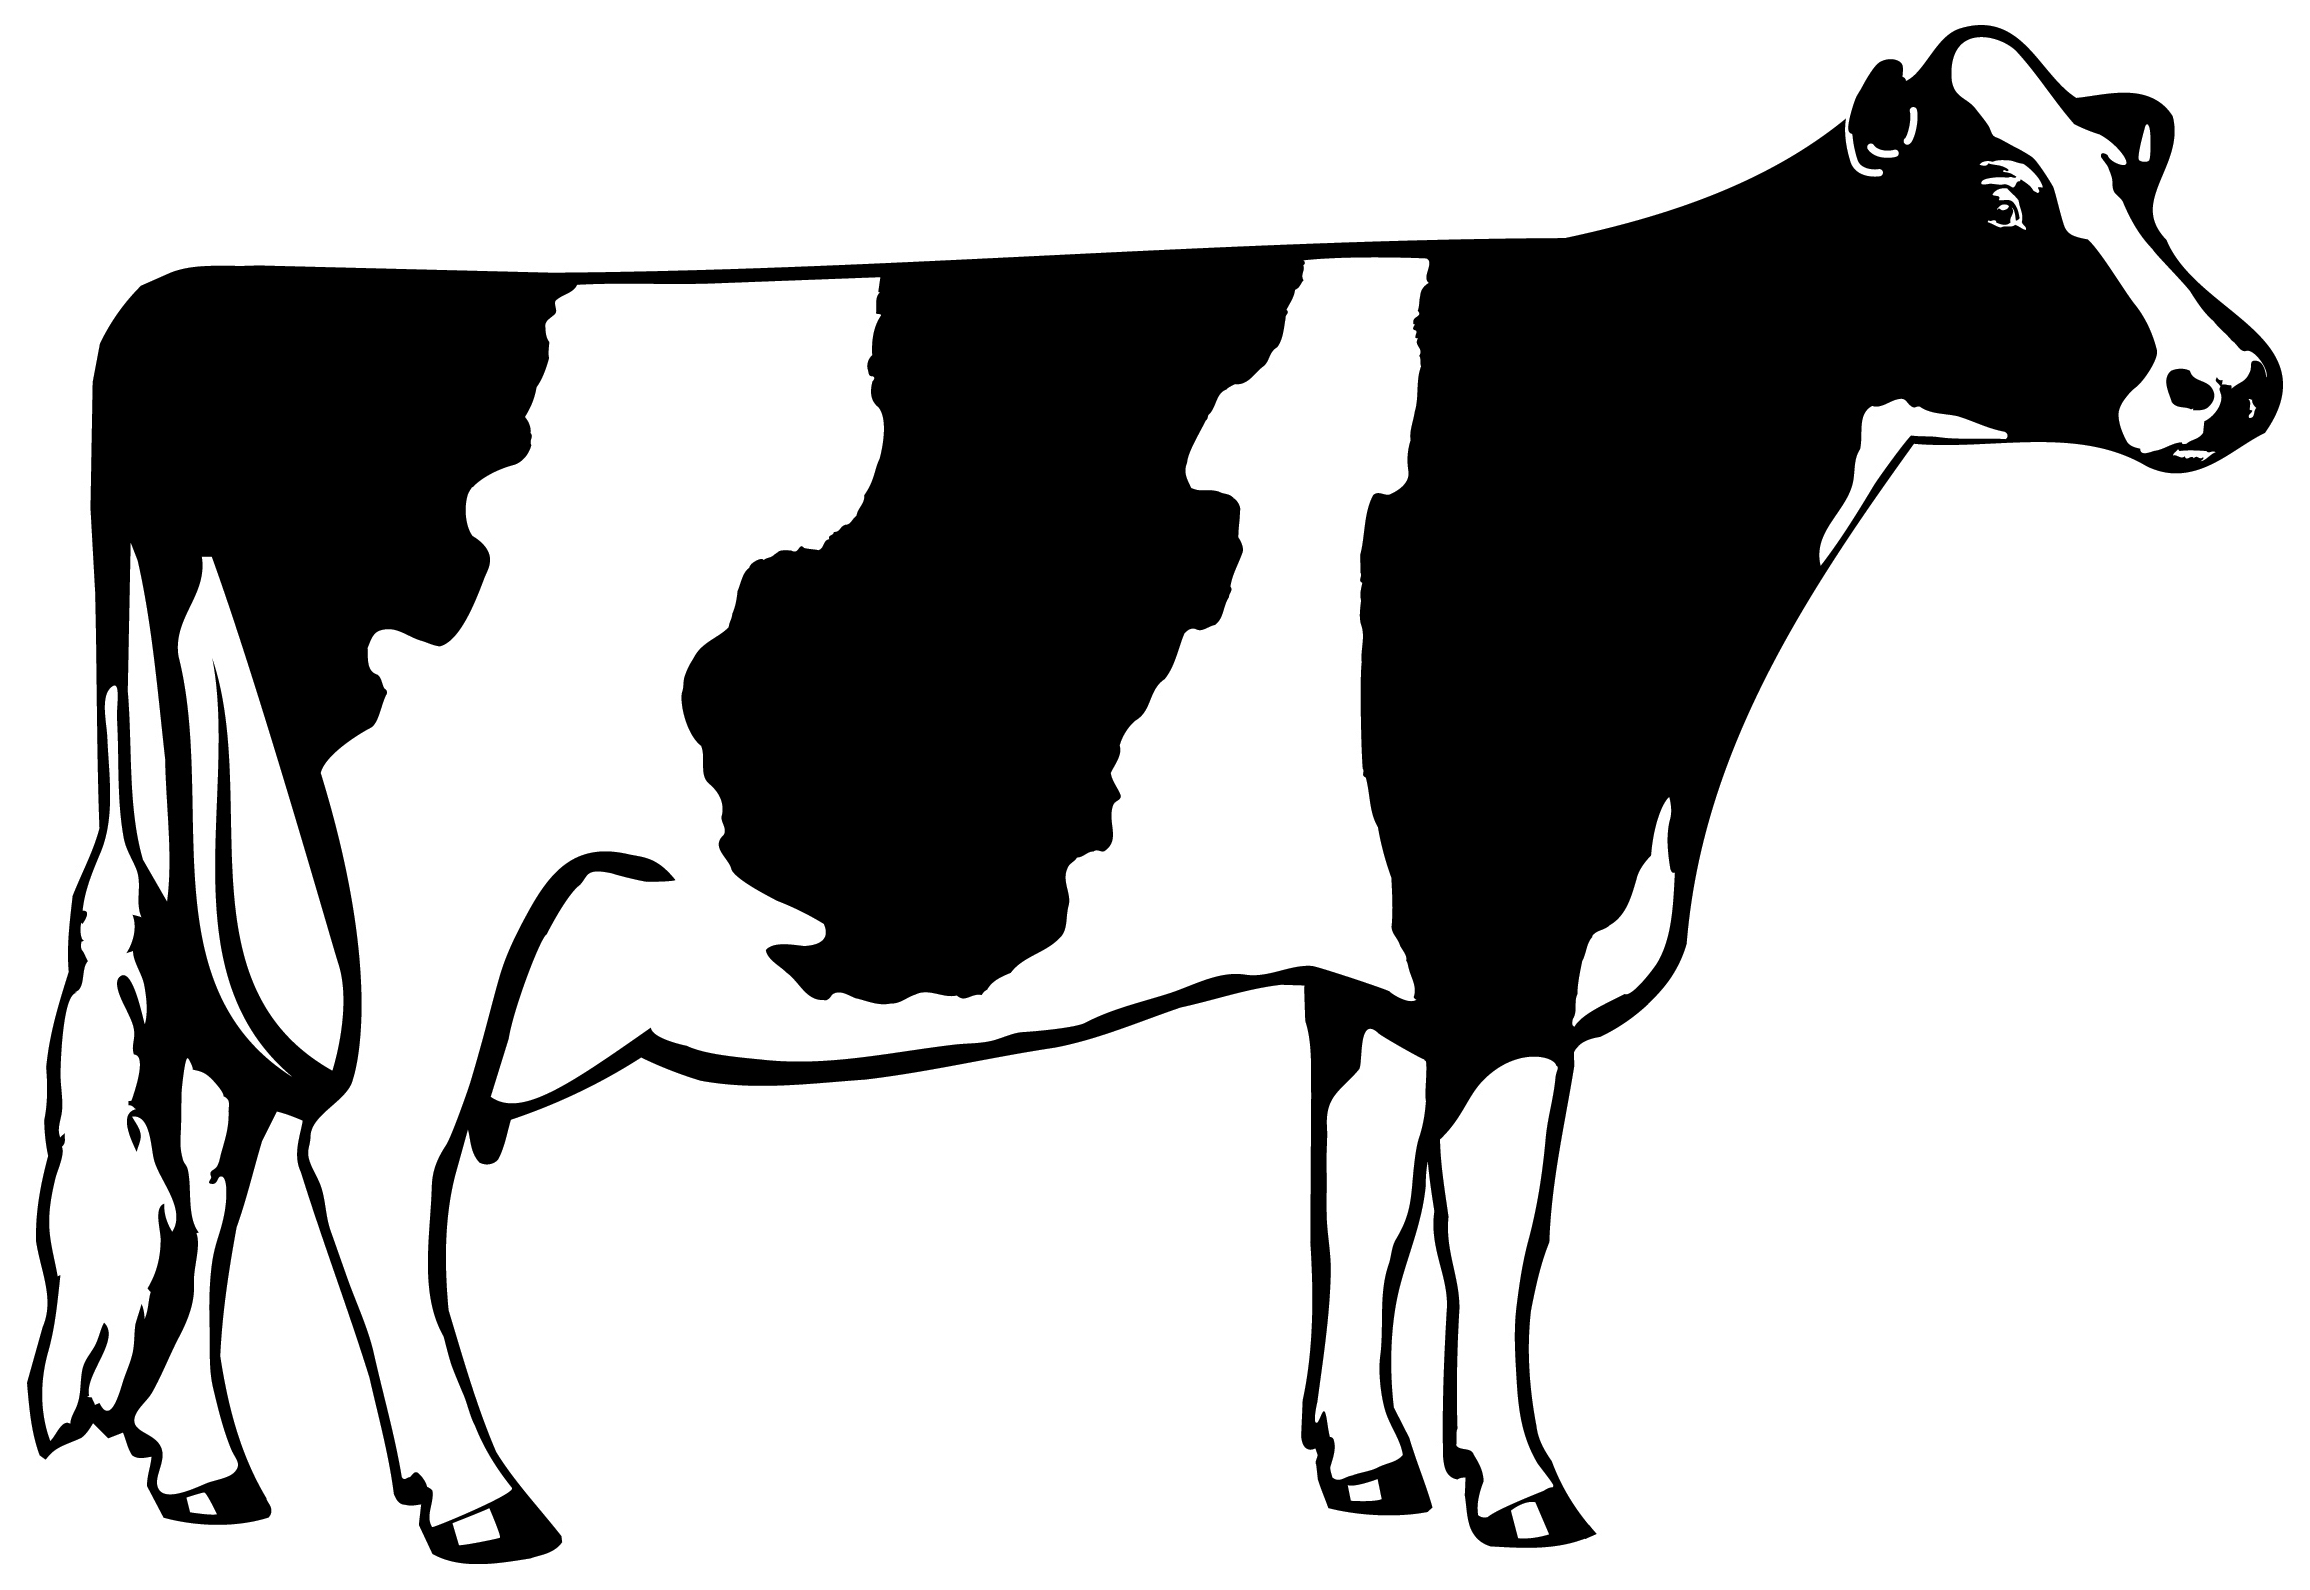 Cow clip art silhouette. Cows at getdrawings com